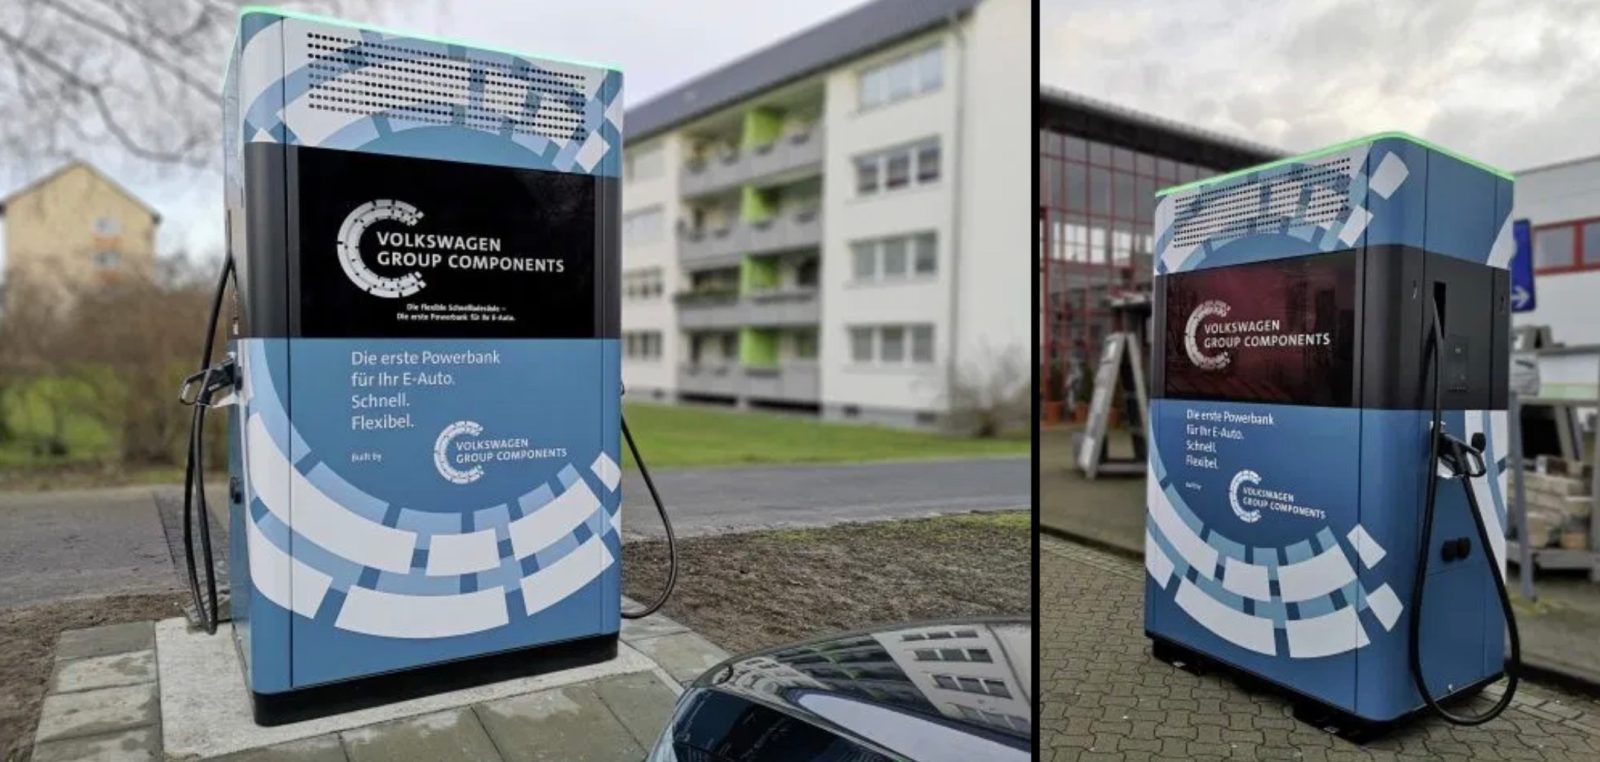 VW deploys first electric car charging stations with giant integrated batteries